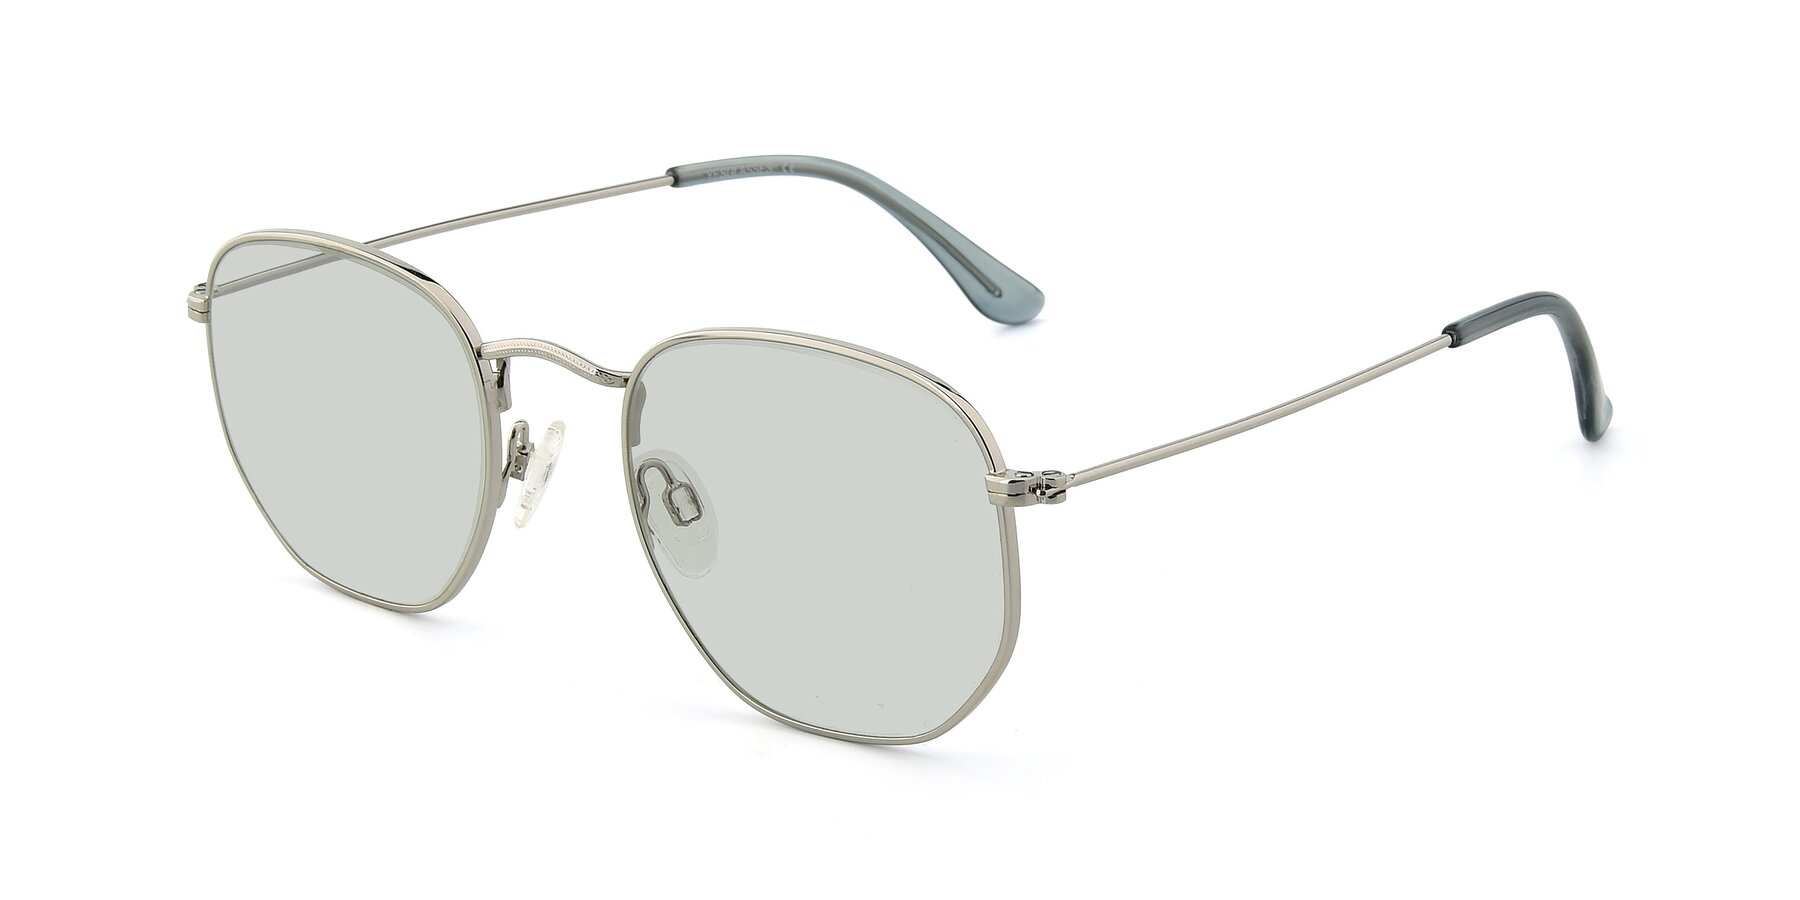 Angle of SSR1943 in Silver with Light Green Tinted Lenses